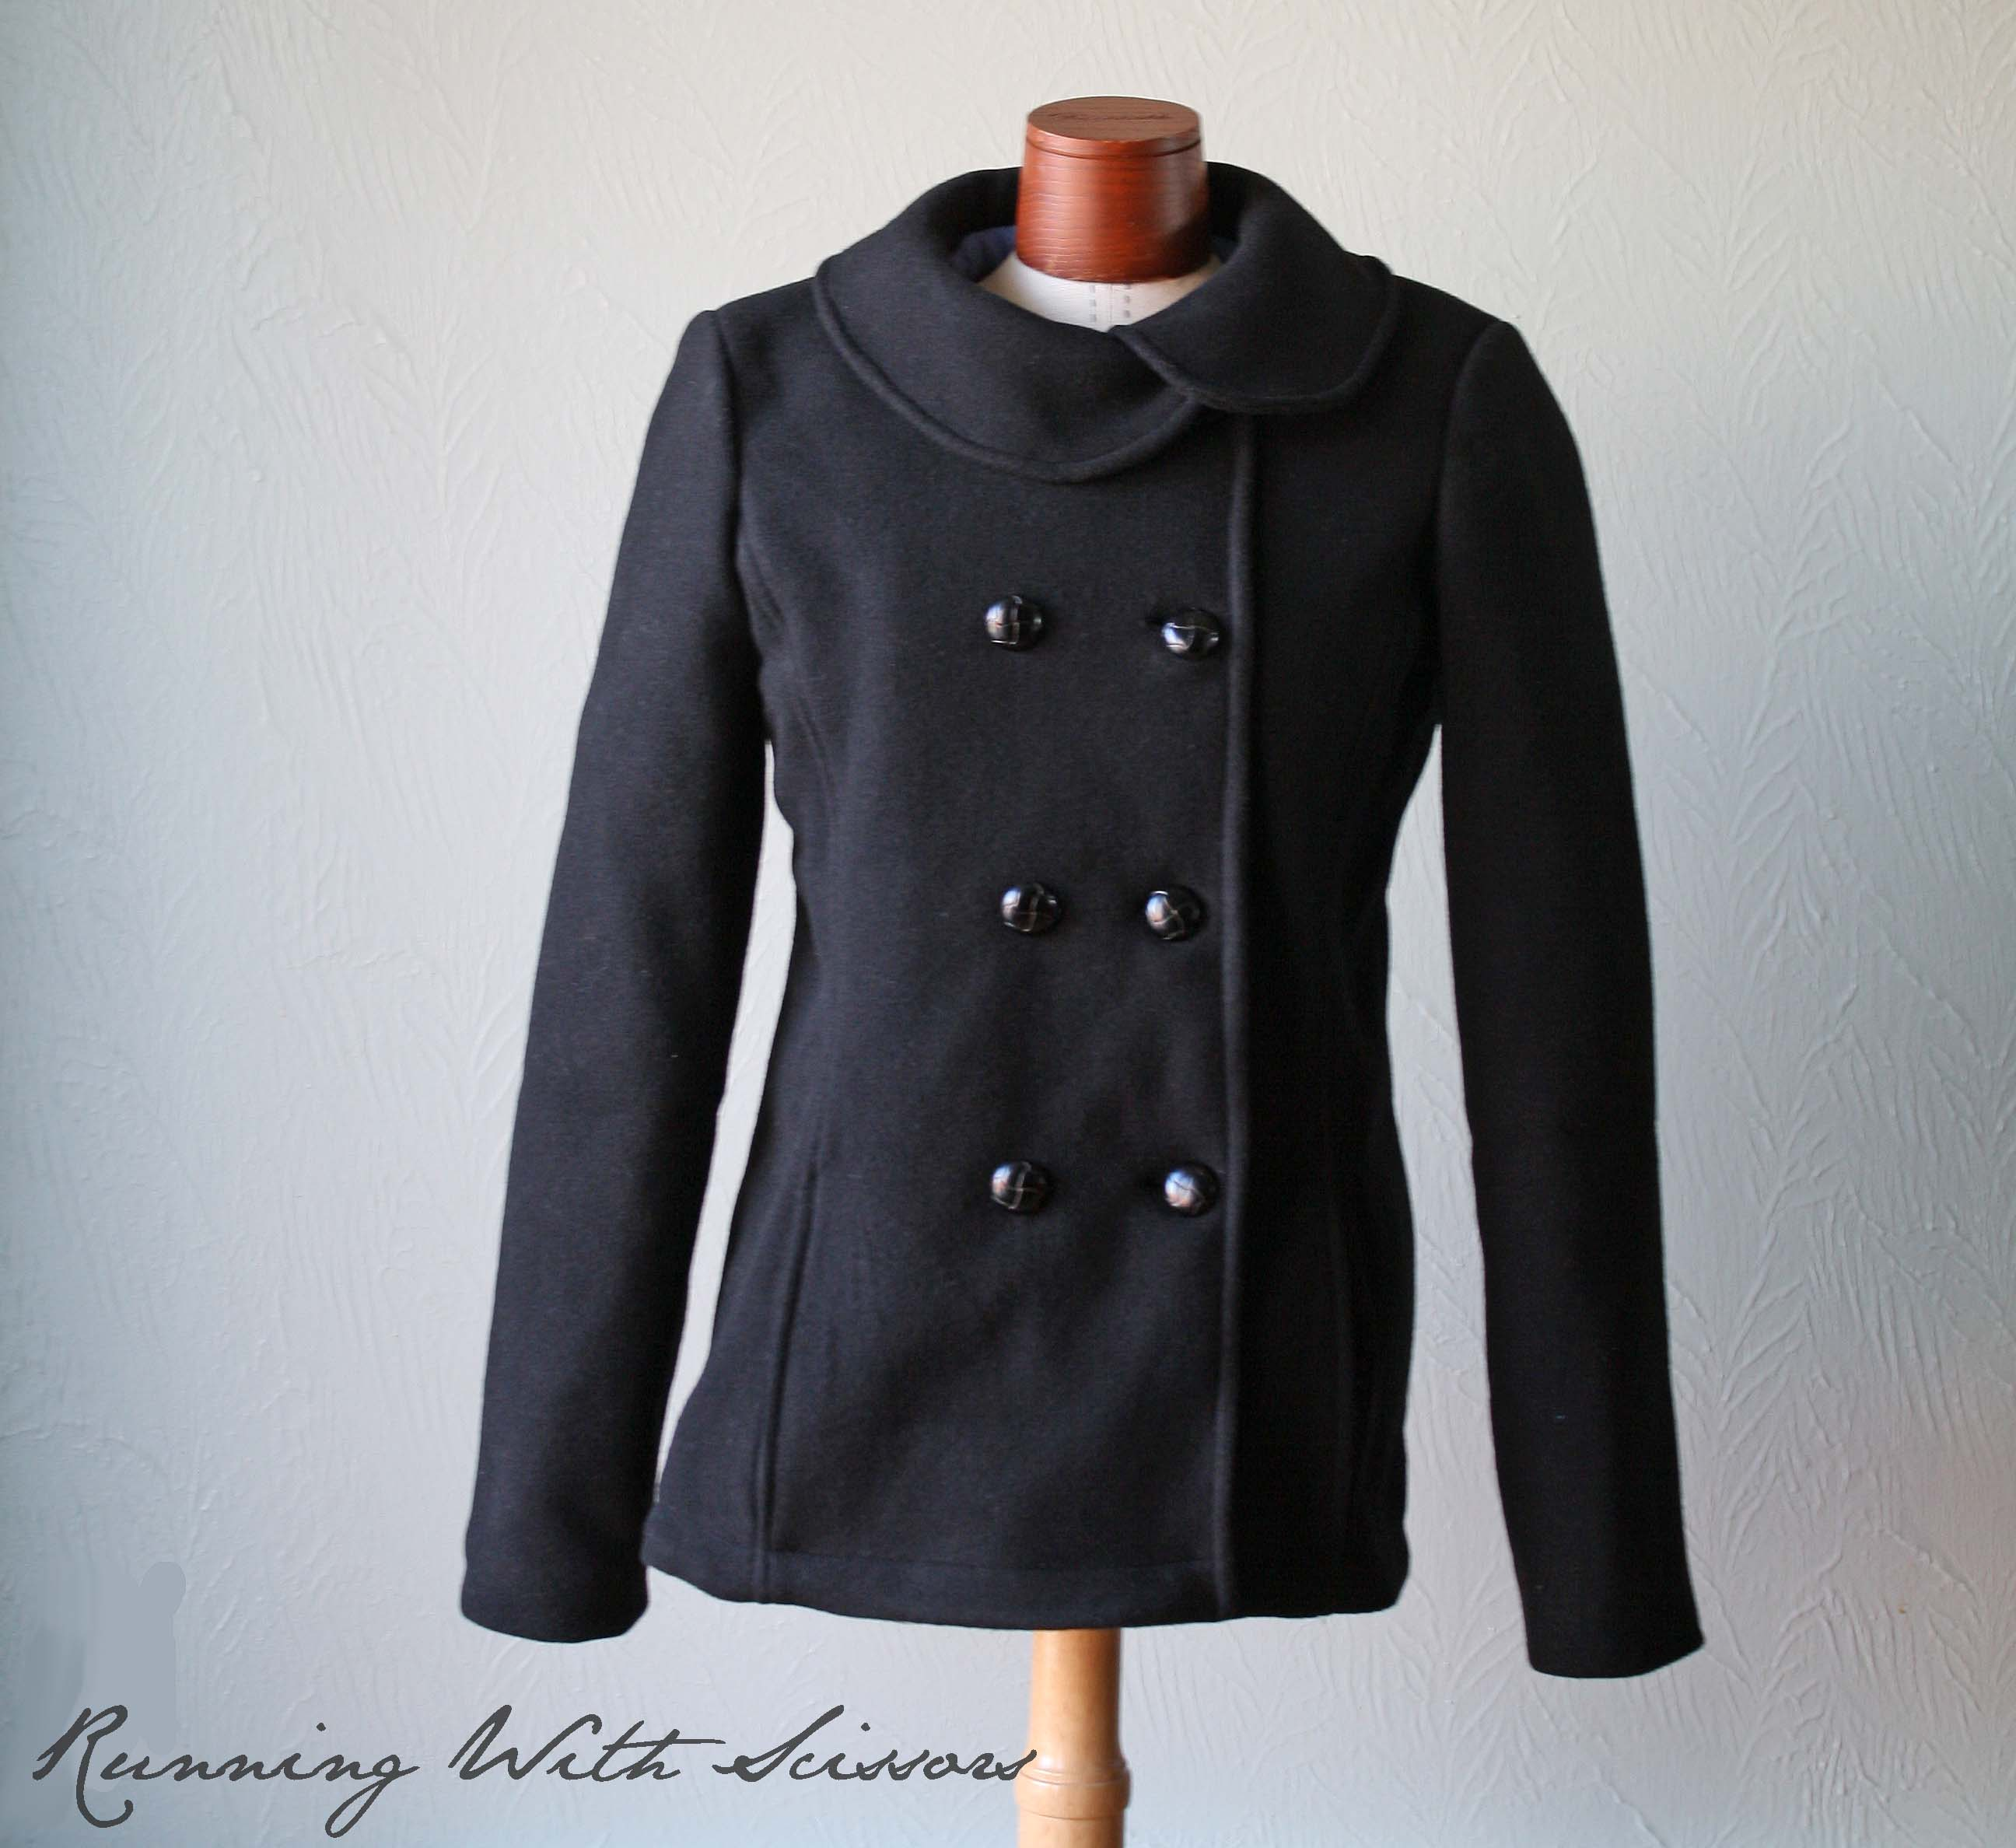 Round Collar Pea Coat Sewing Projects Burdastyle Com